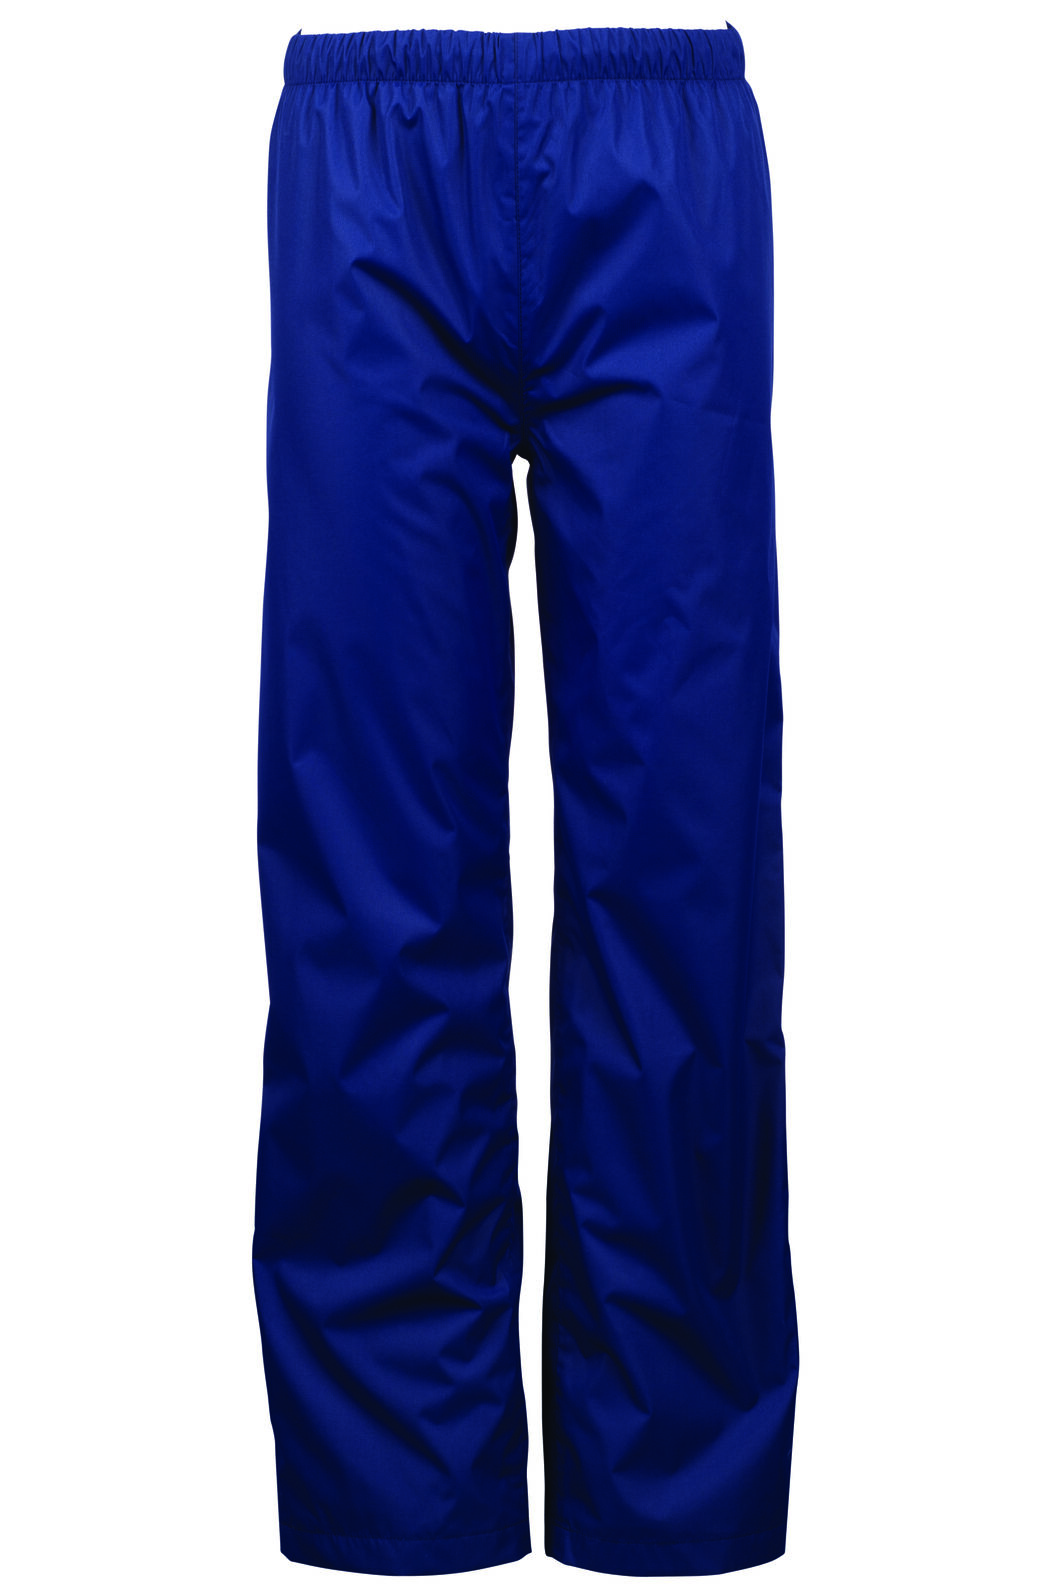 Jetstream Pants V2 - Kids', Medieval Blue, hi-res